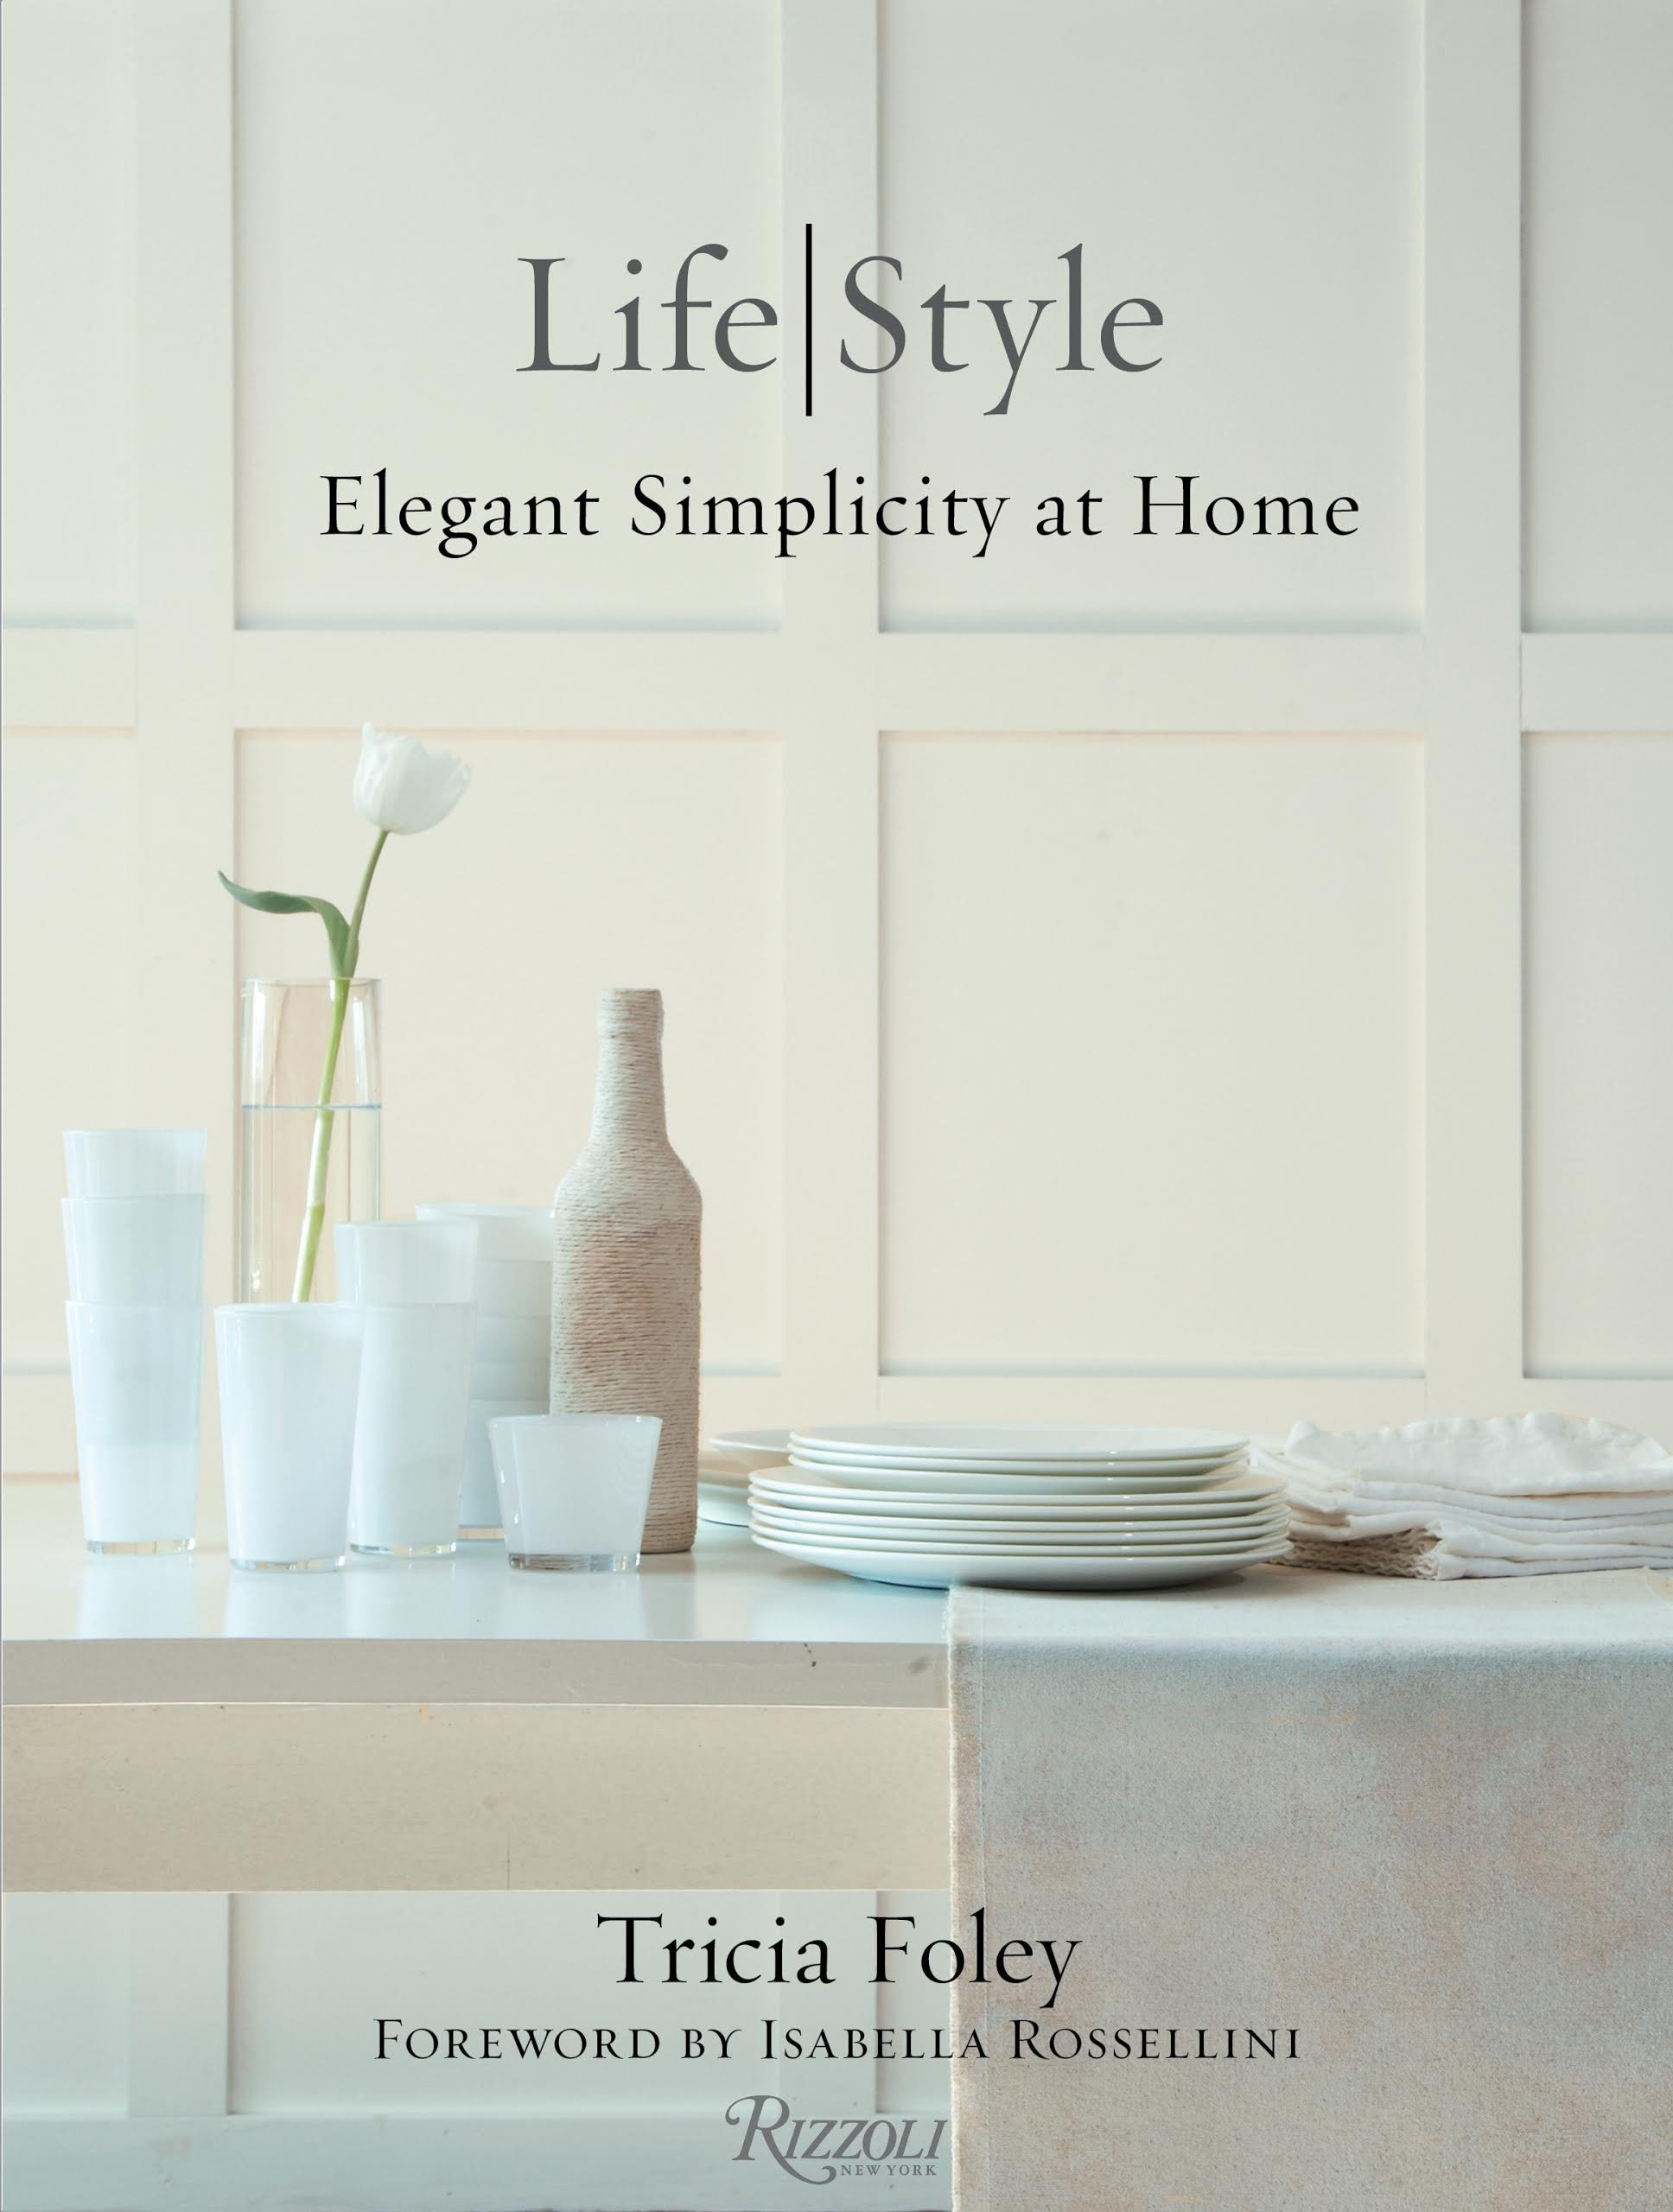 Lifestyle: Elegant Simplicity at Home by Tricia Foley. #whitedecor #decoratingwithwhite